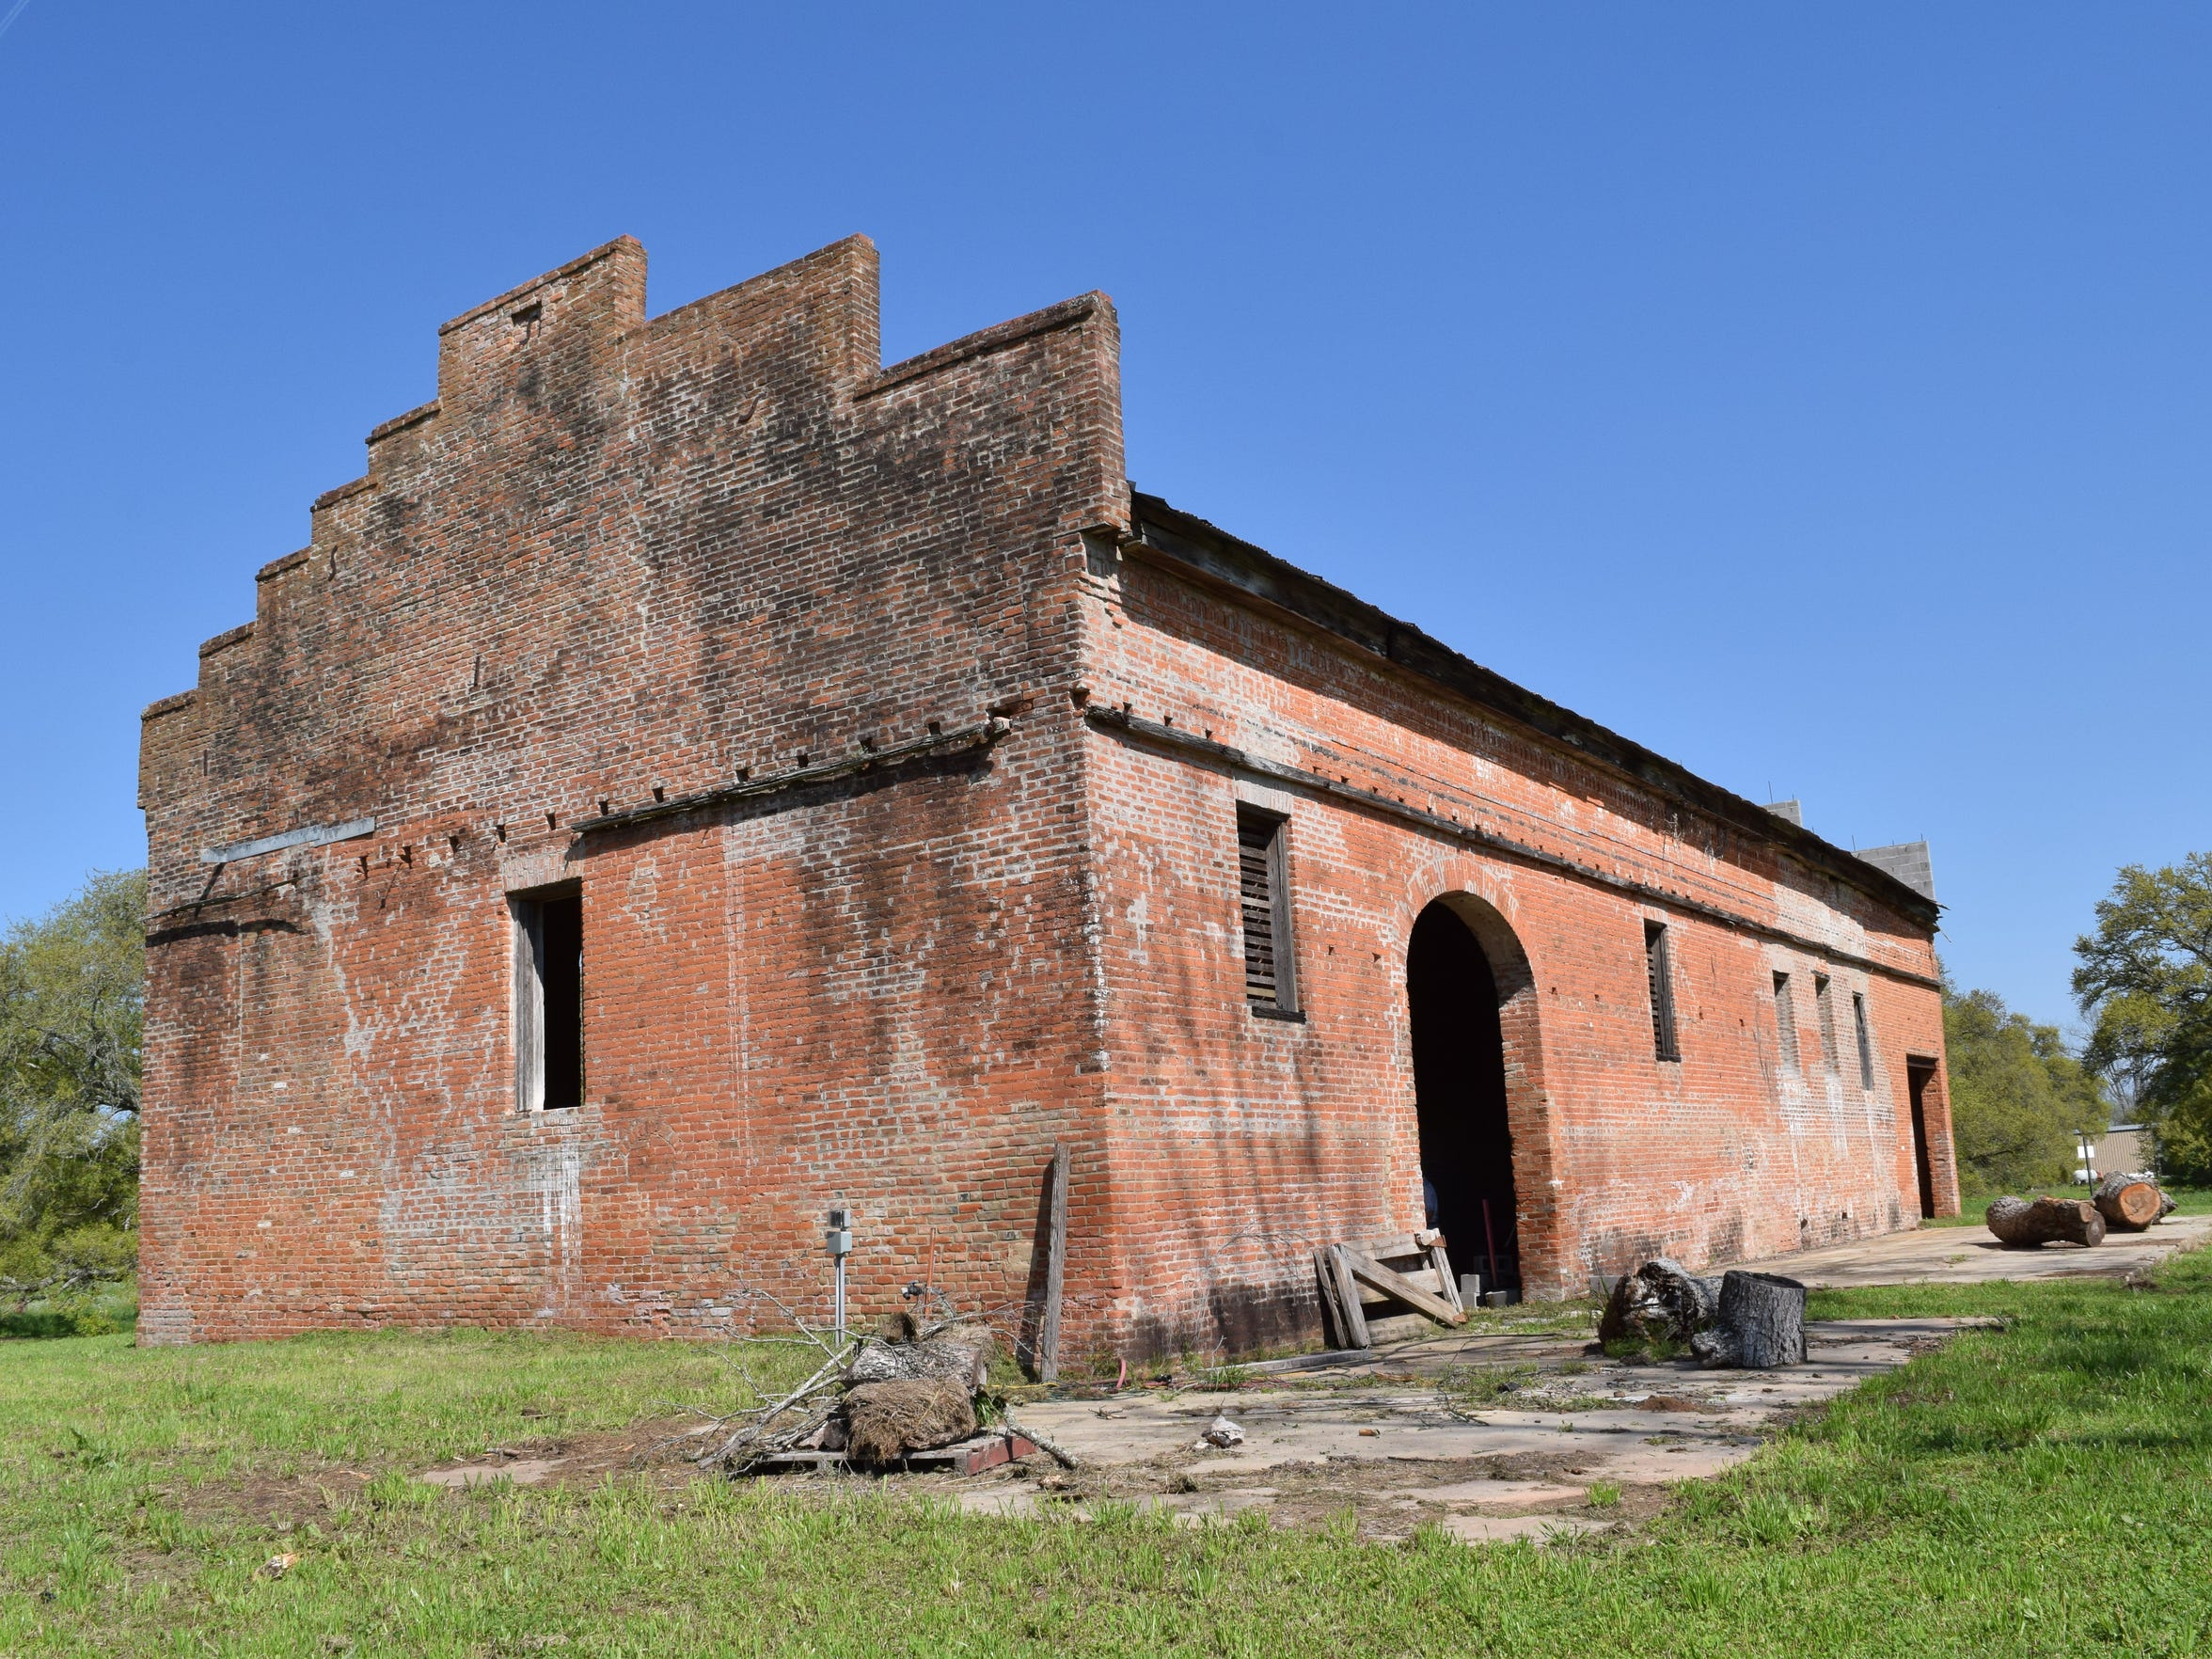 The Rosalie Sugar Mill located off Old Baton Rouge